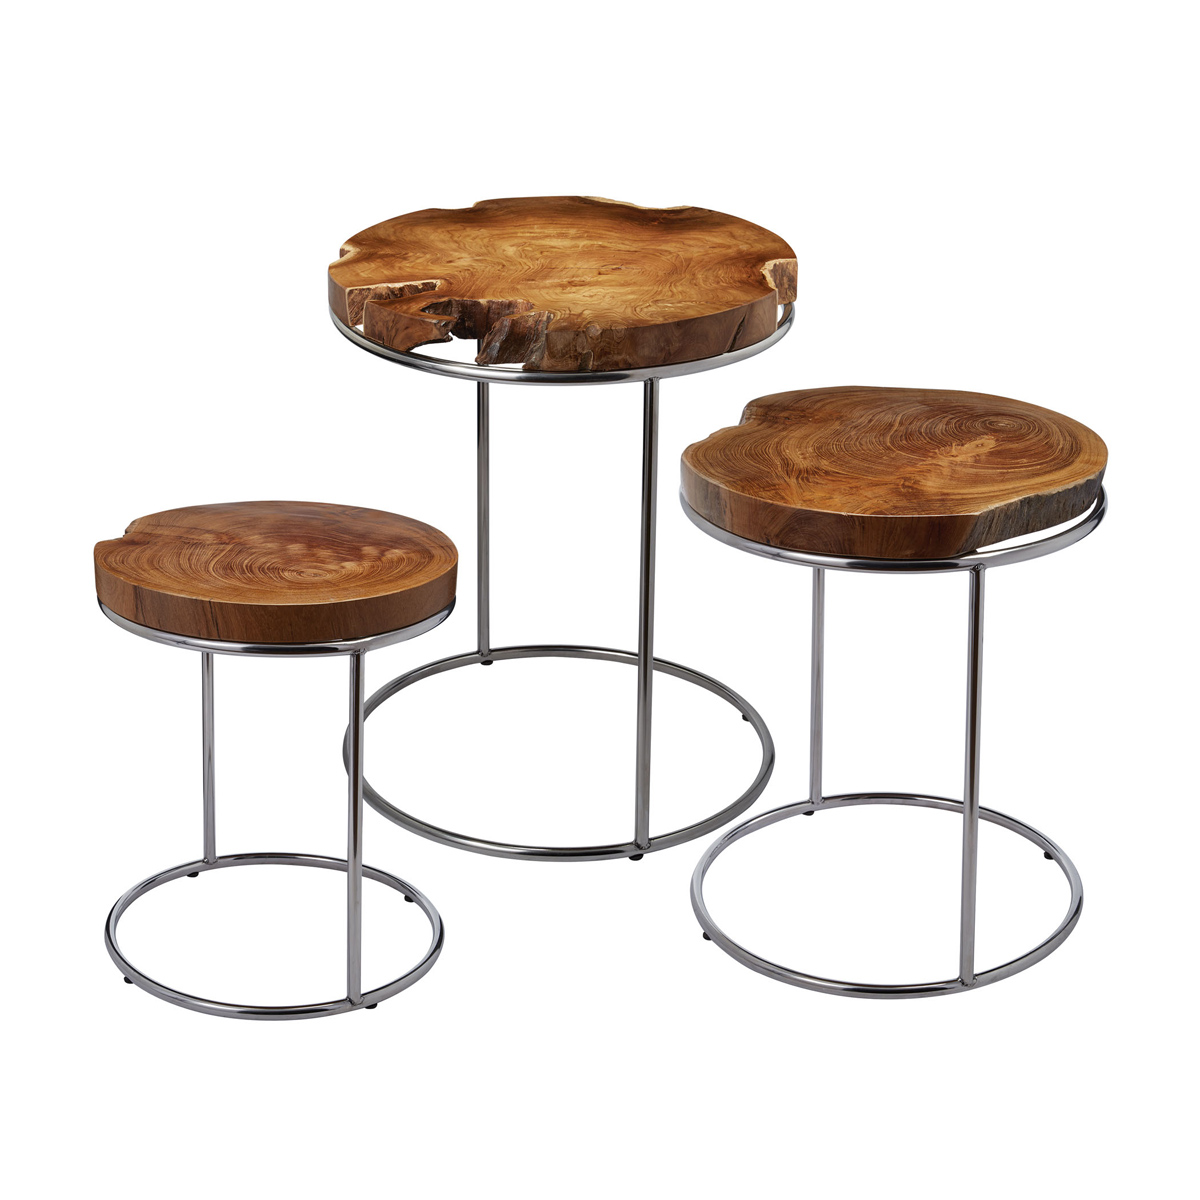 Natural teak stacking tables - set of 3